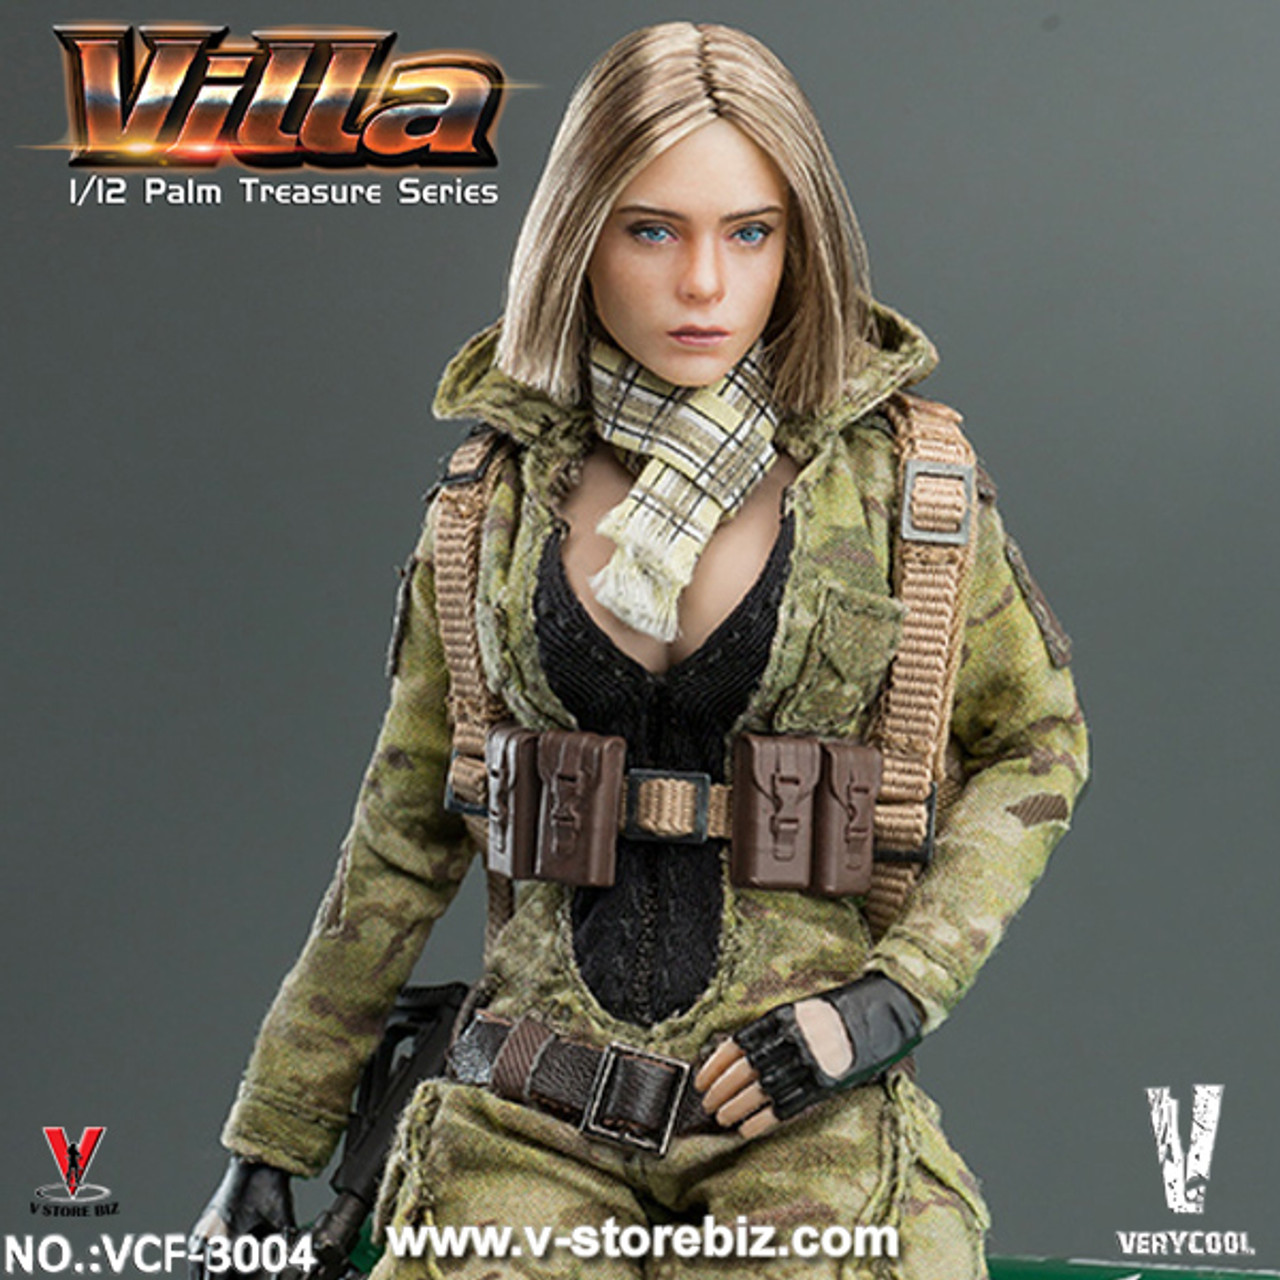 Cat Toys Female Military Camouflage Jacket TBLeague 1//6 Scale Phicen Hot Toys